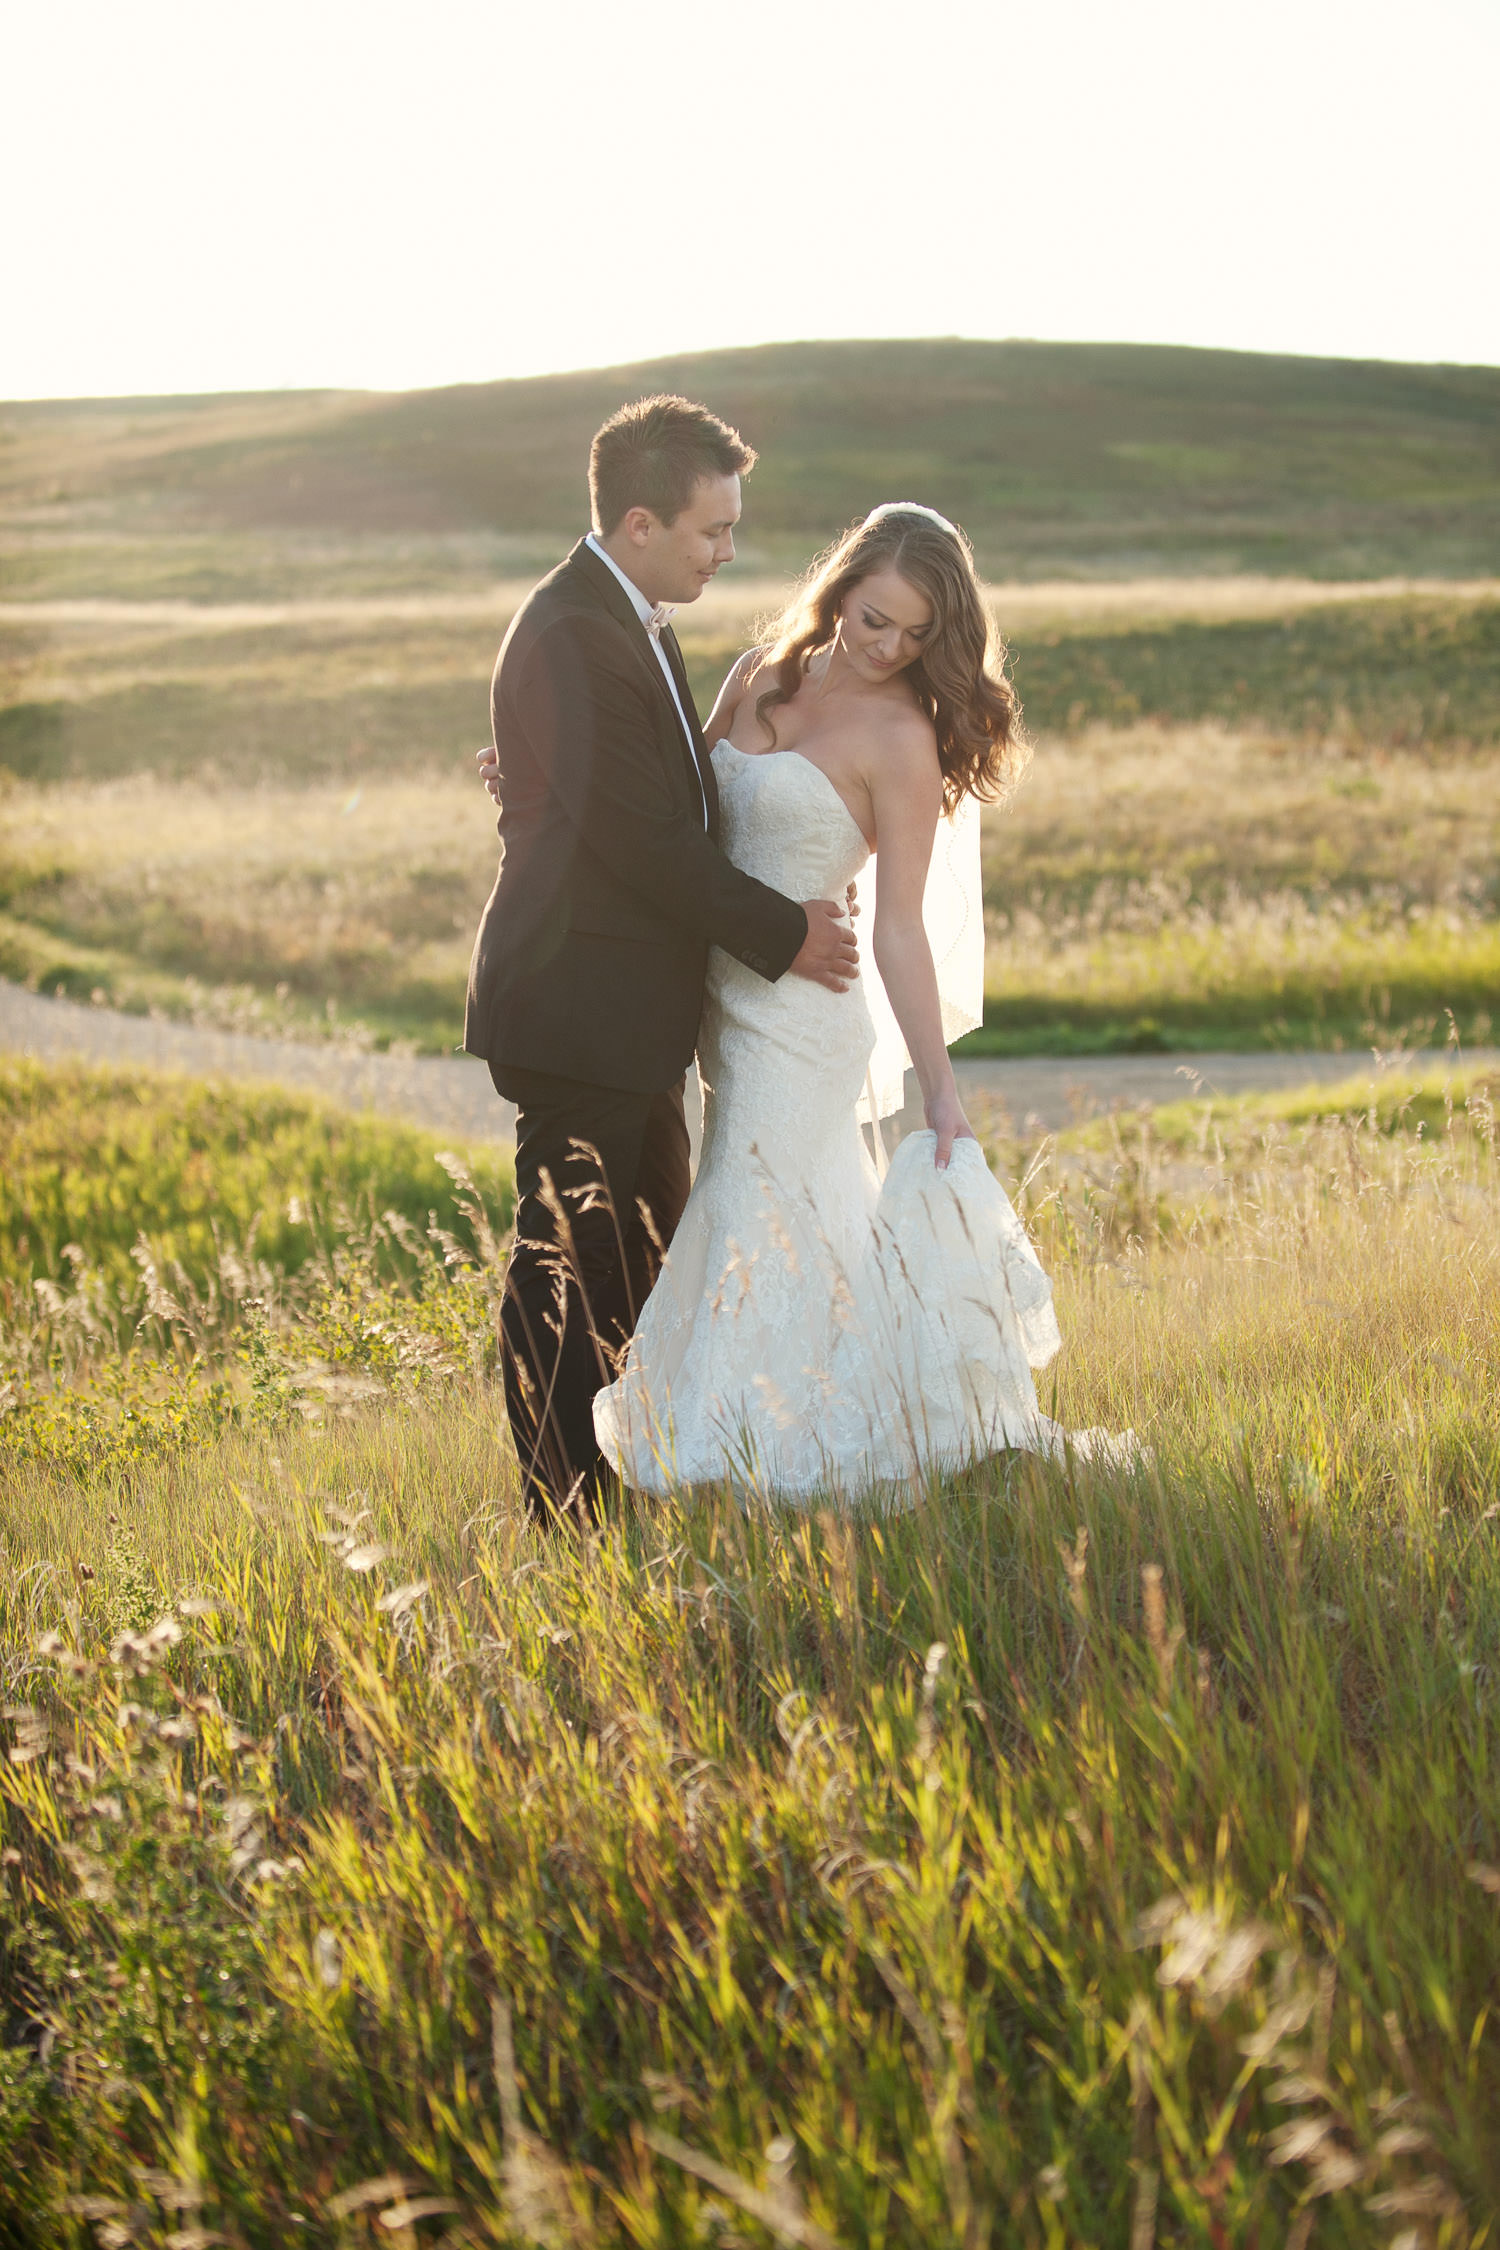 Elope in Calgary with Joy curated elopement package